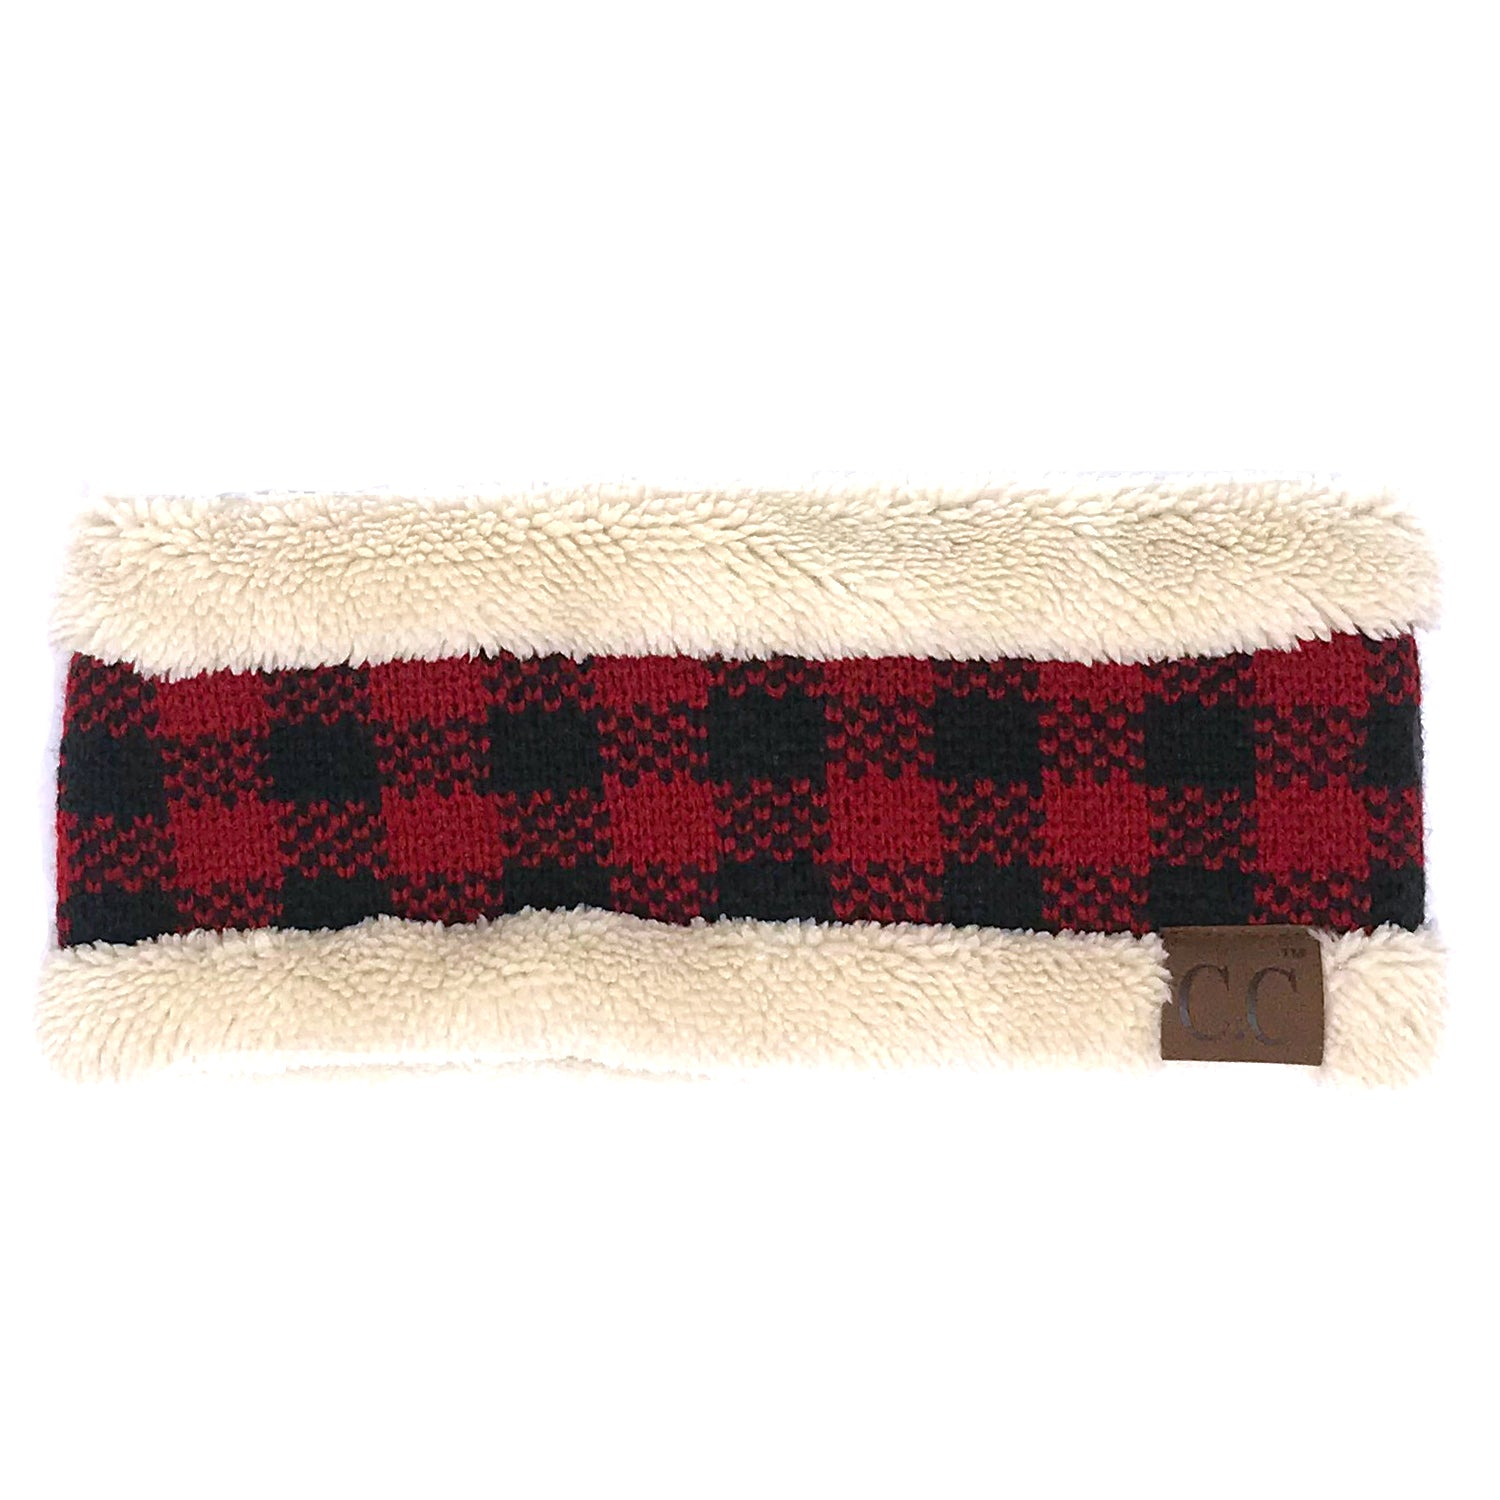 HW-17 BUFFALO PLAID BEIGE RED/BLACK